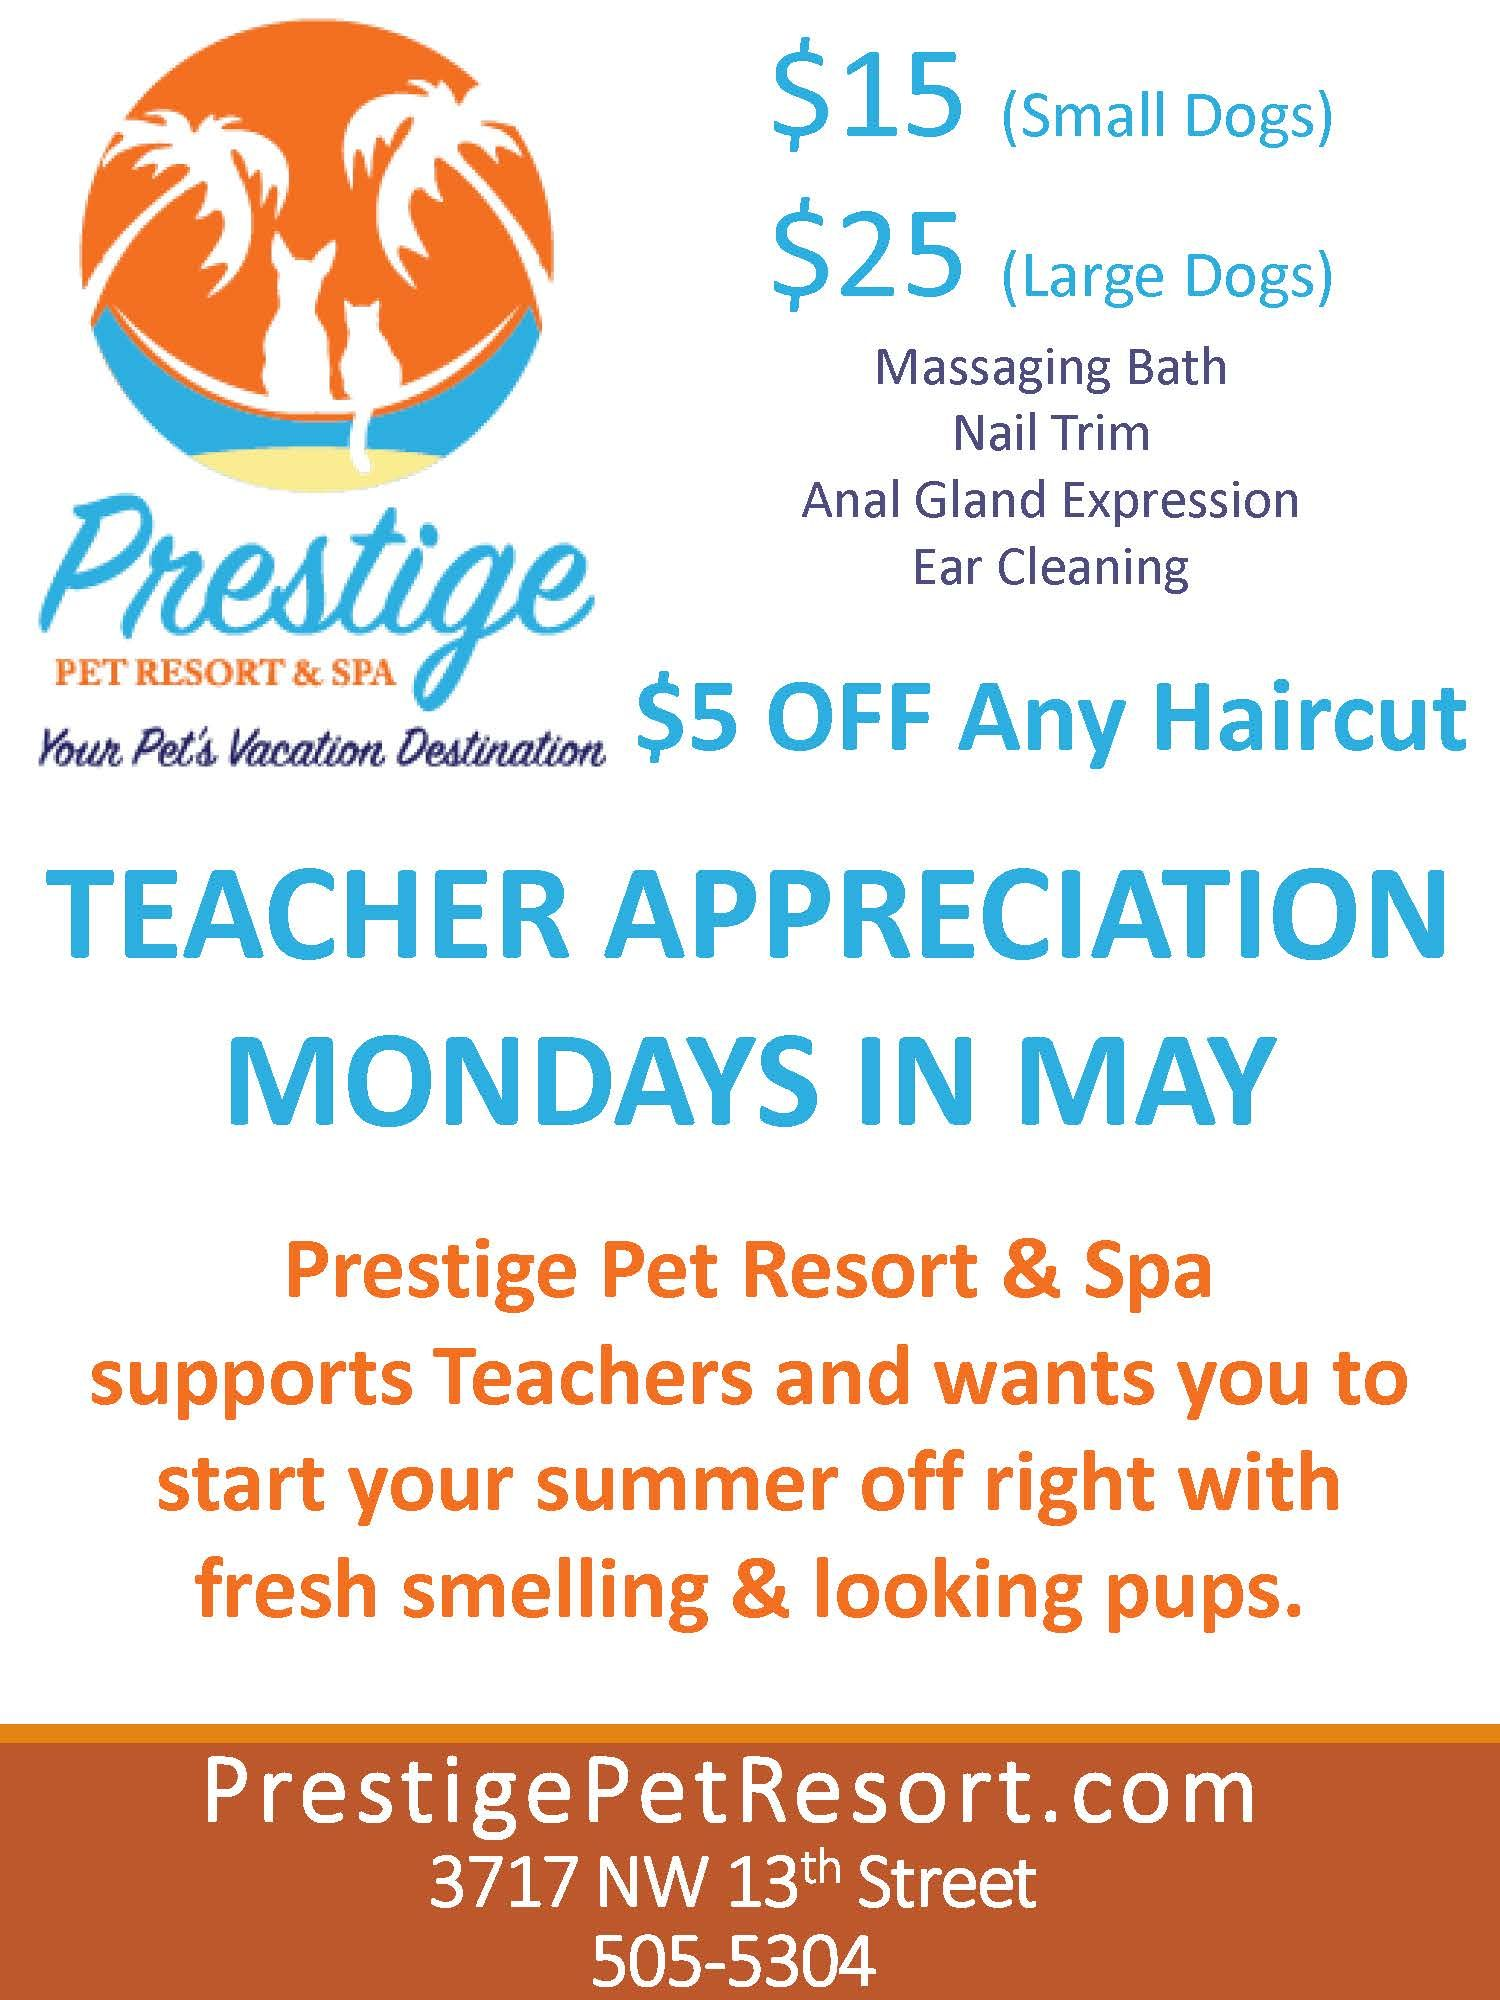 Teacher Appreciation Grooming Specials - Mondays in May